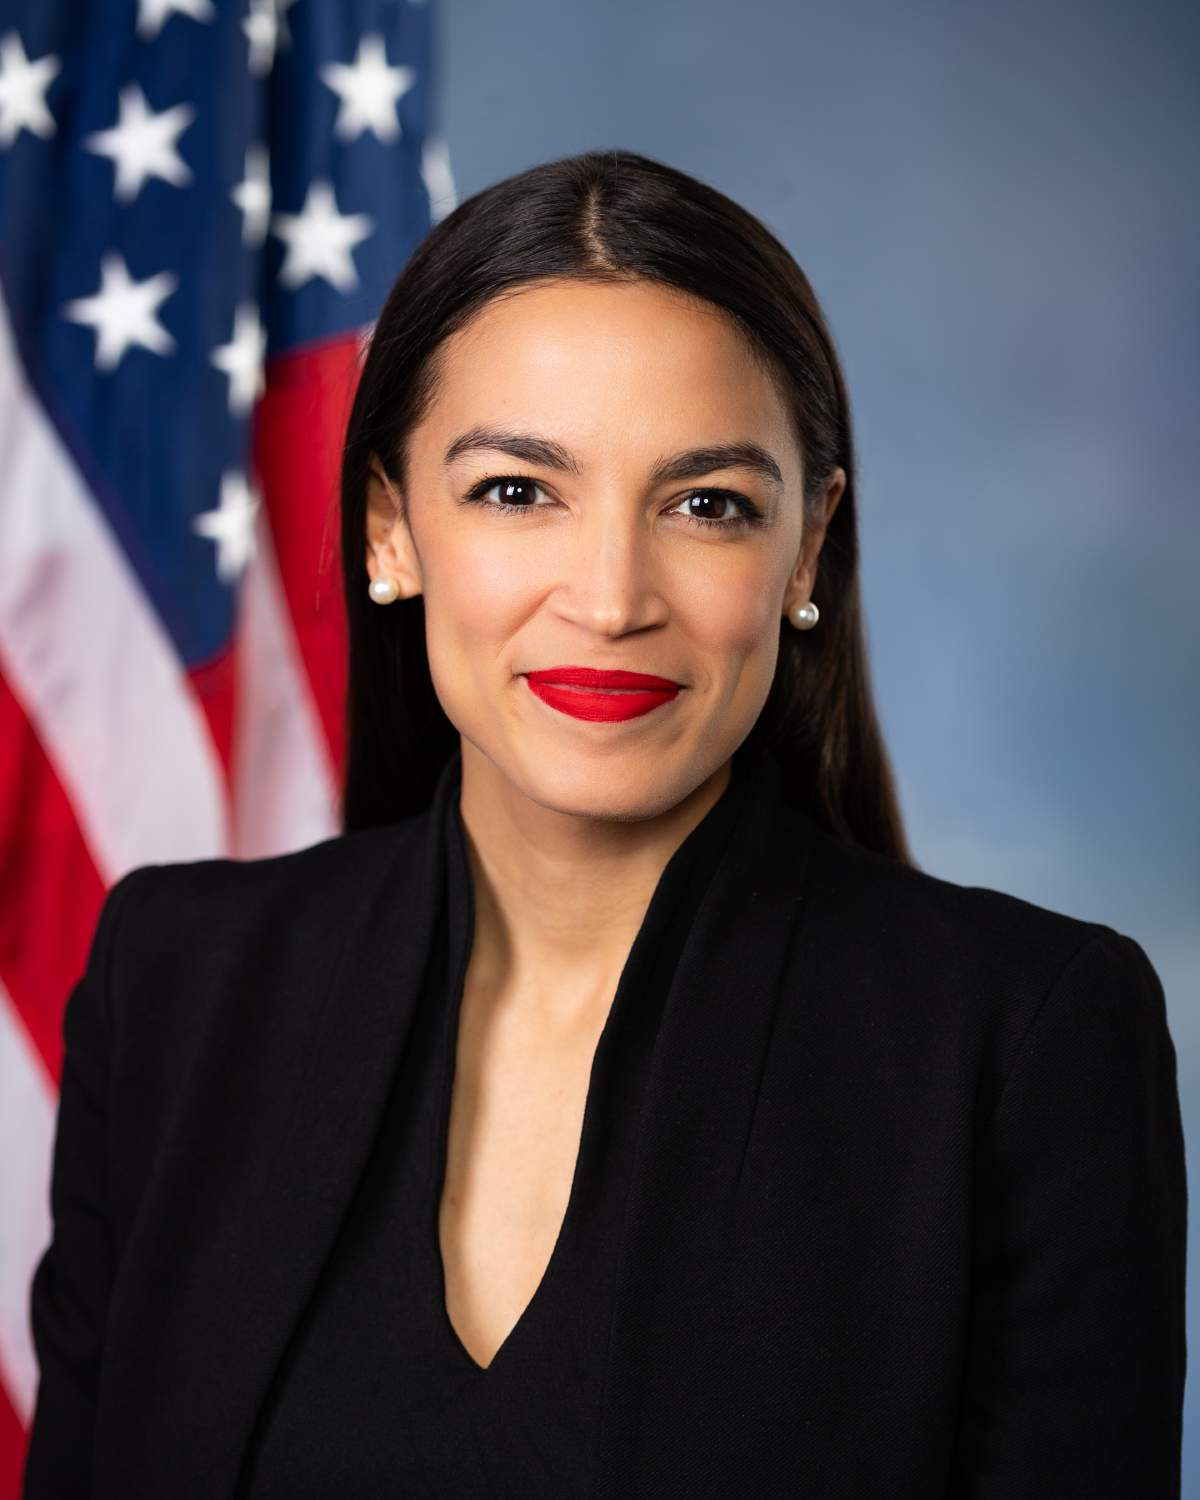 Forget ripples, Ocasio-Cortez is making waves